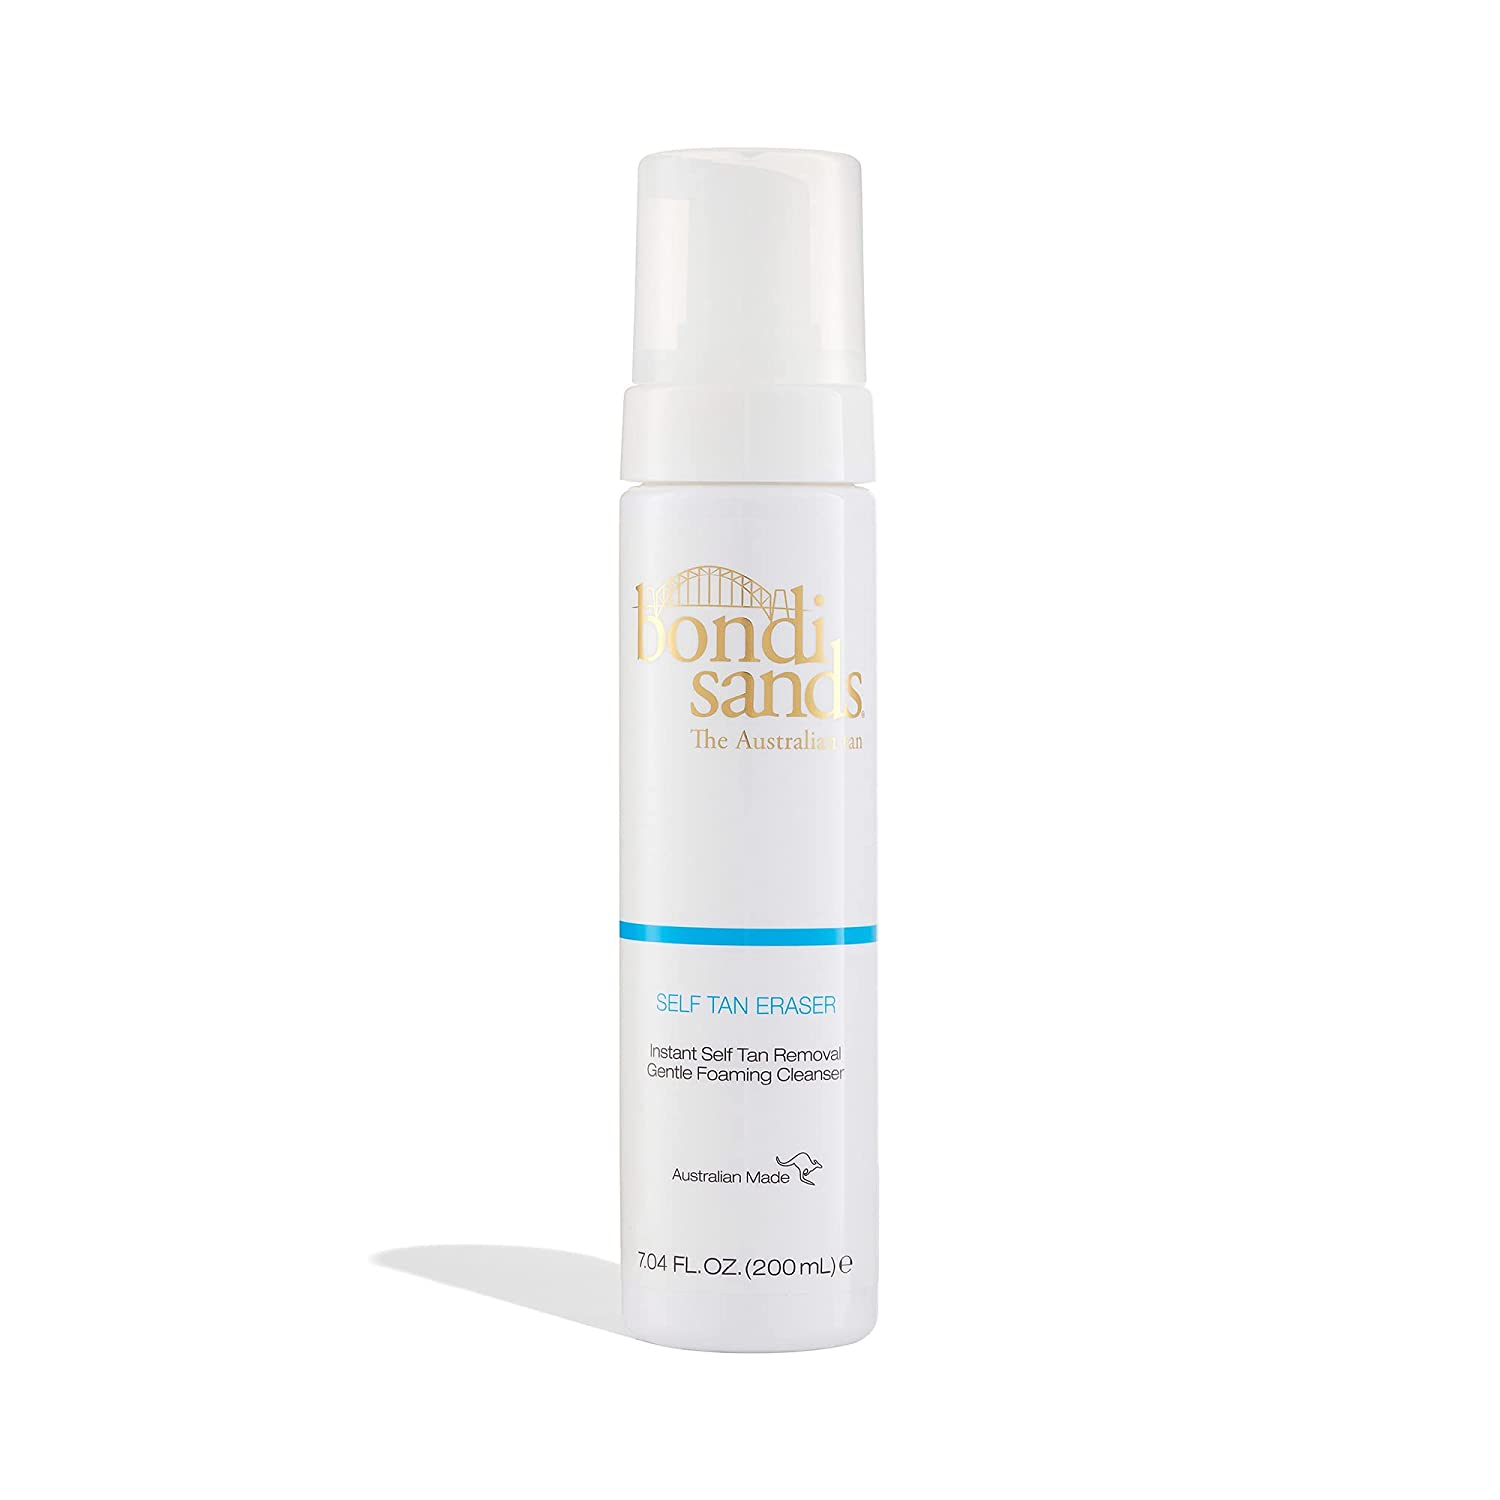 Max 43% 67% OFF of fixed price OFF Bondi Sands Self Tan Eraser Moisturizing Gentle Fo Cleansing